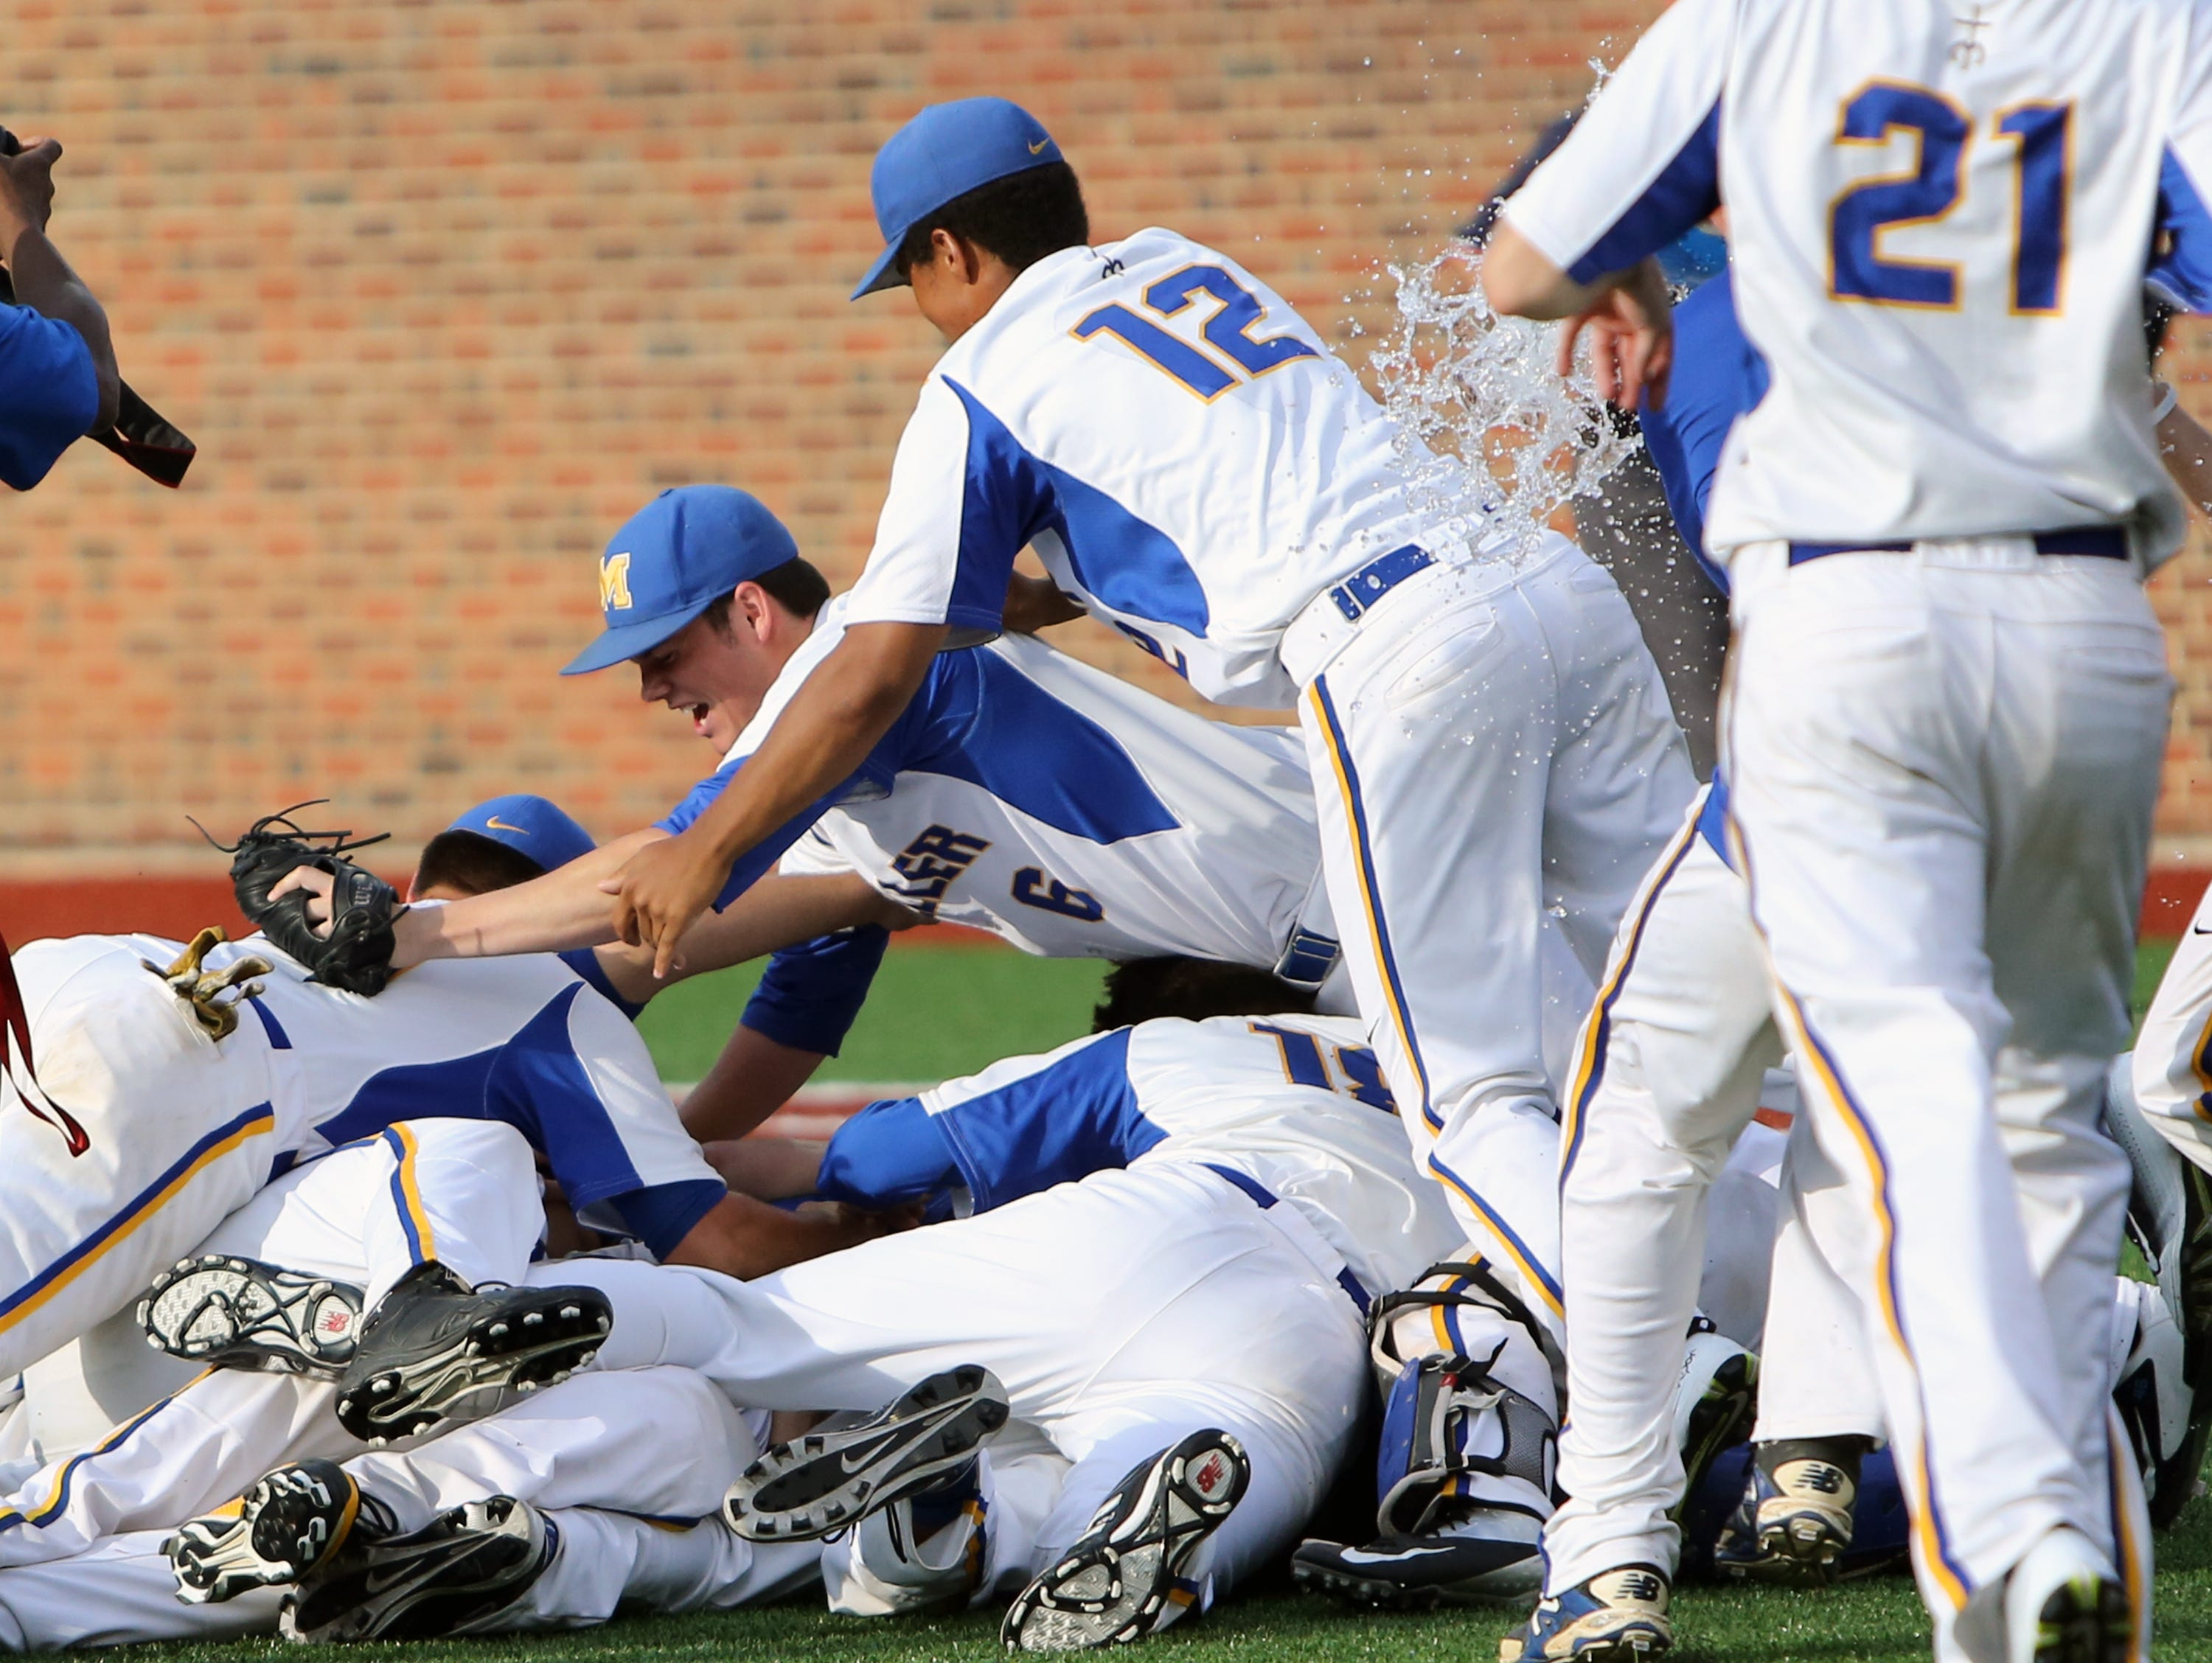 Moeller pitcher Joe Vranesic (6) manages to escape being mobbed by his teammates, then joins the celebration pile.